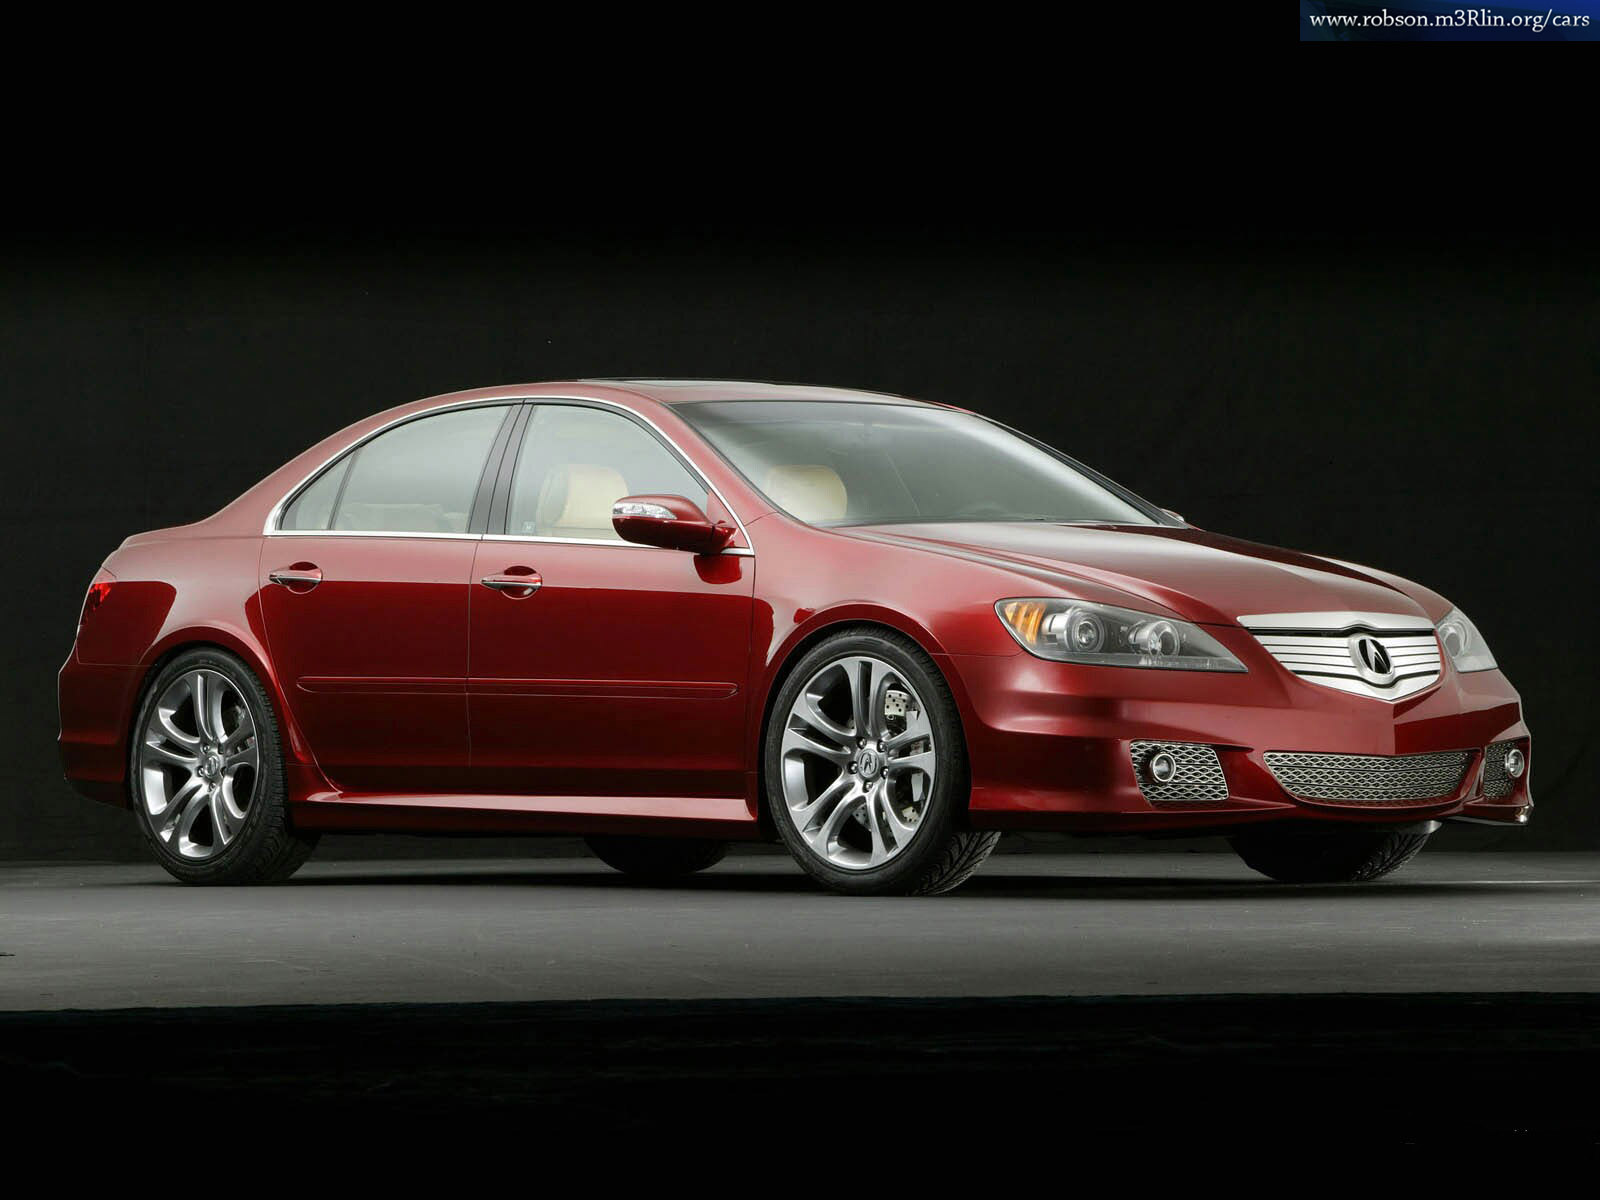 TOP SPEED LATEST CARS: 2006 Acura RL